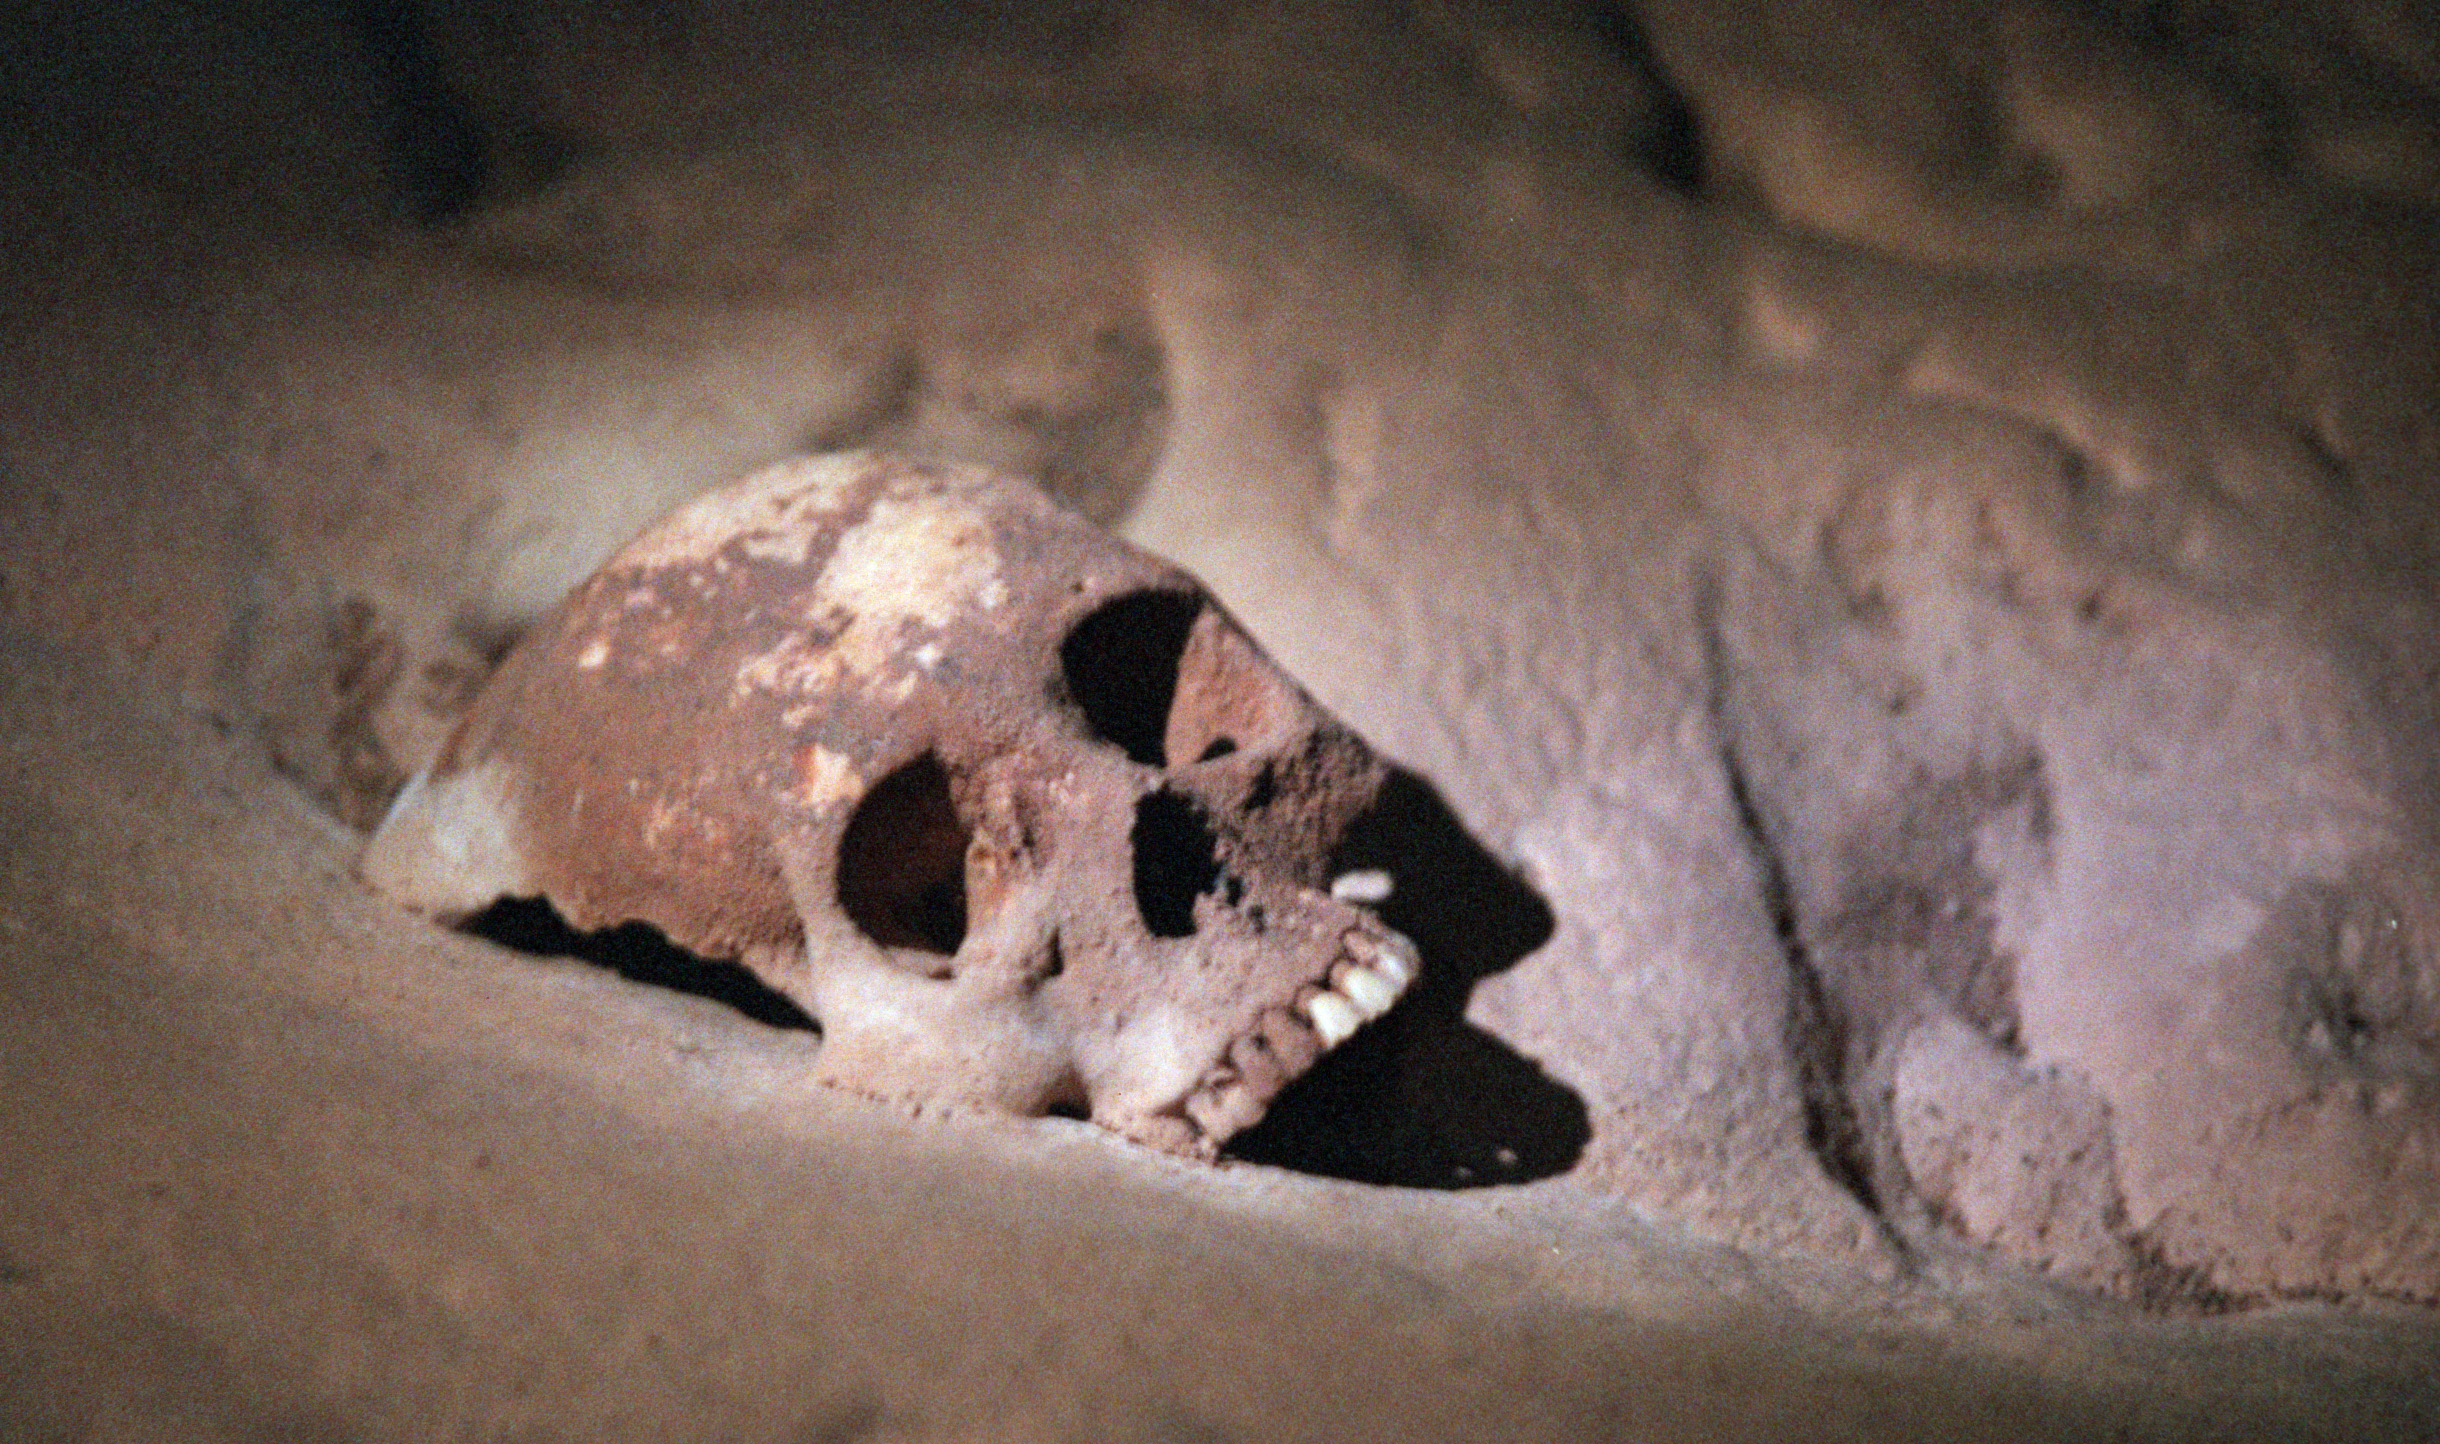 BELIZE---12/01----Deep in the cave of Actun Tunical Muknal lies skeletal remains encrusted with calc